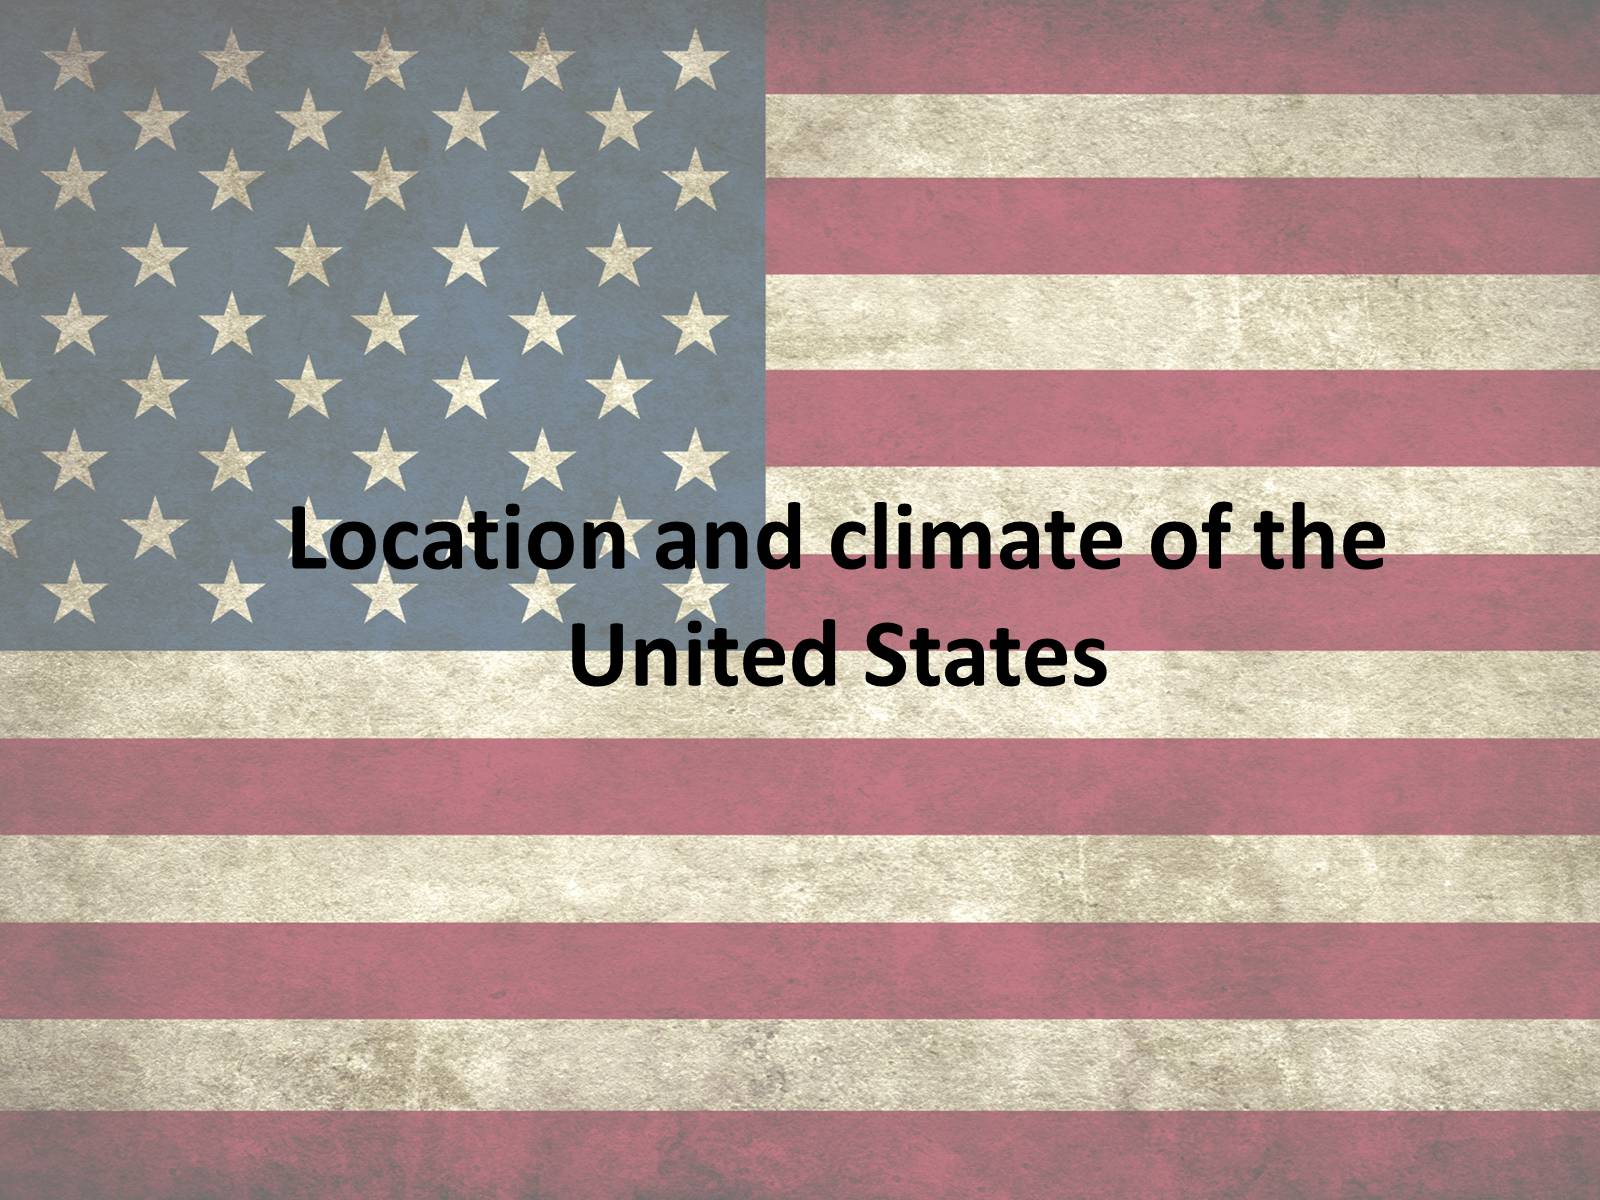 Презентація на тему «Location and climate of the United States»